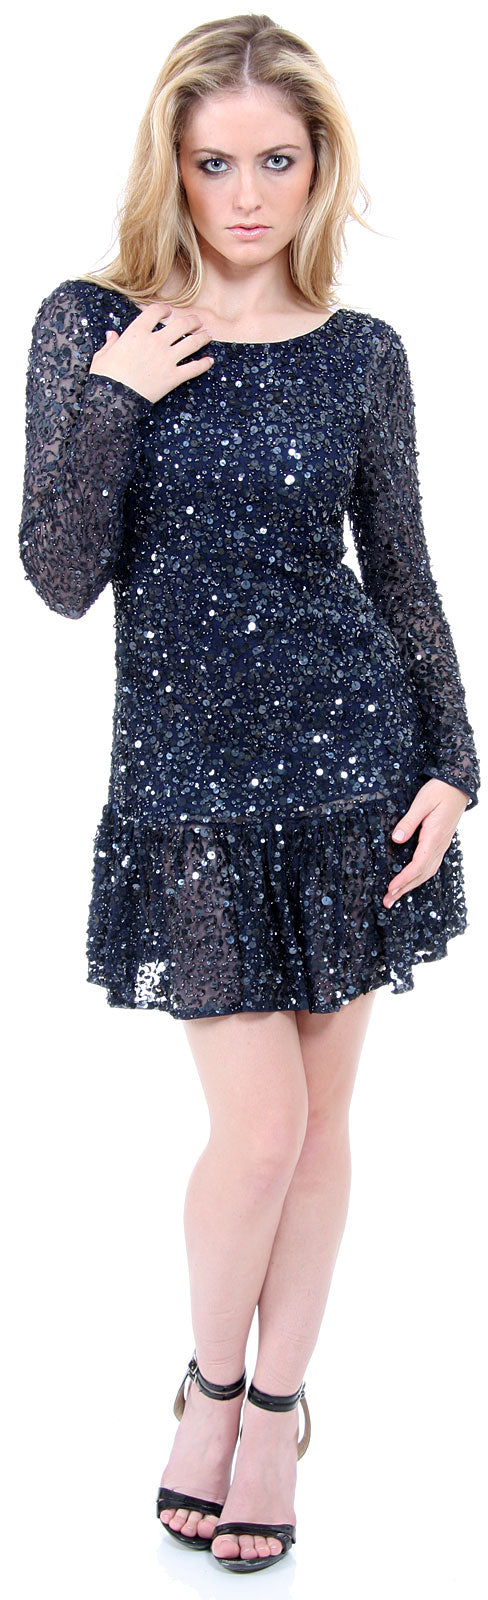 Image of Full Sleeves Flared Skirt Sequined Mini Party Dress in Navy